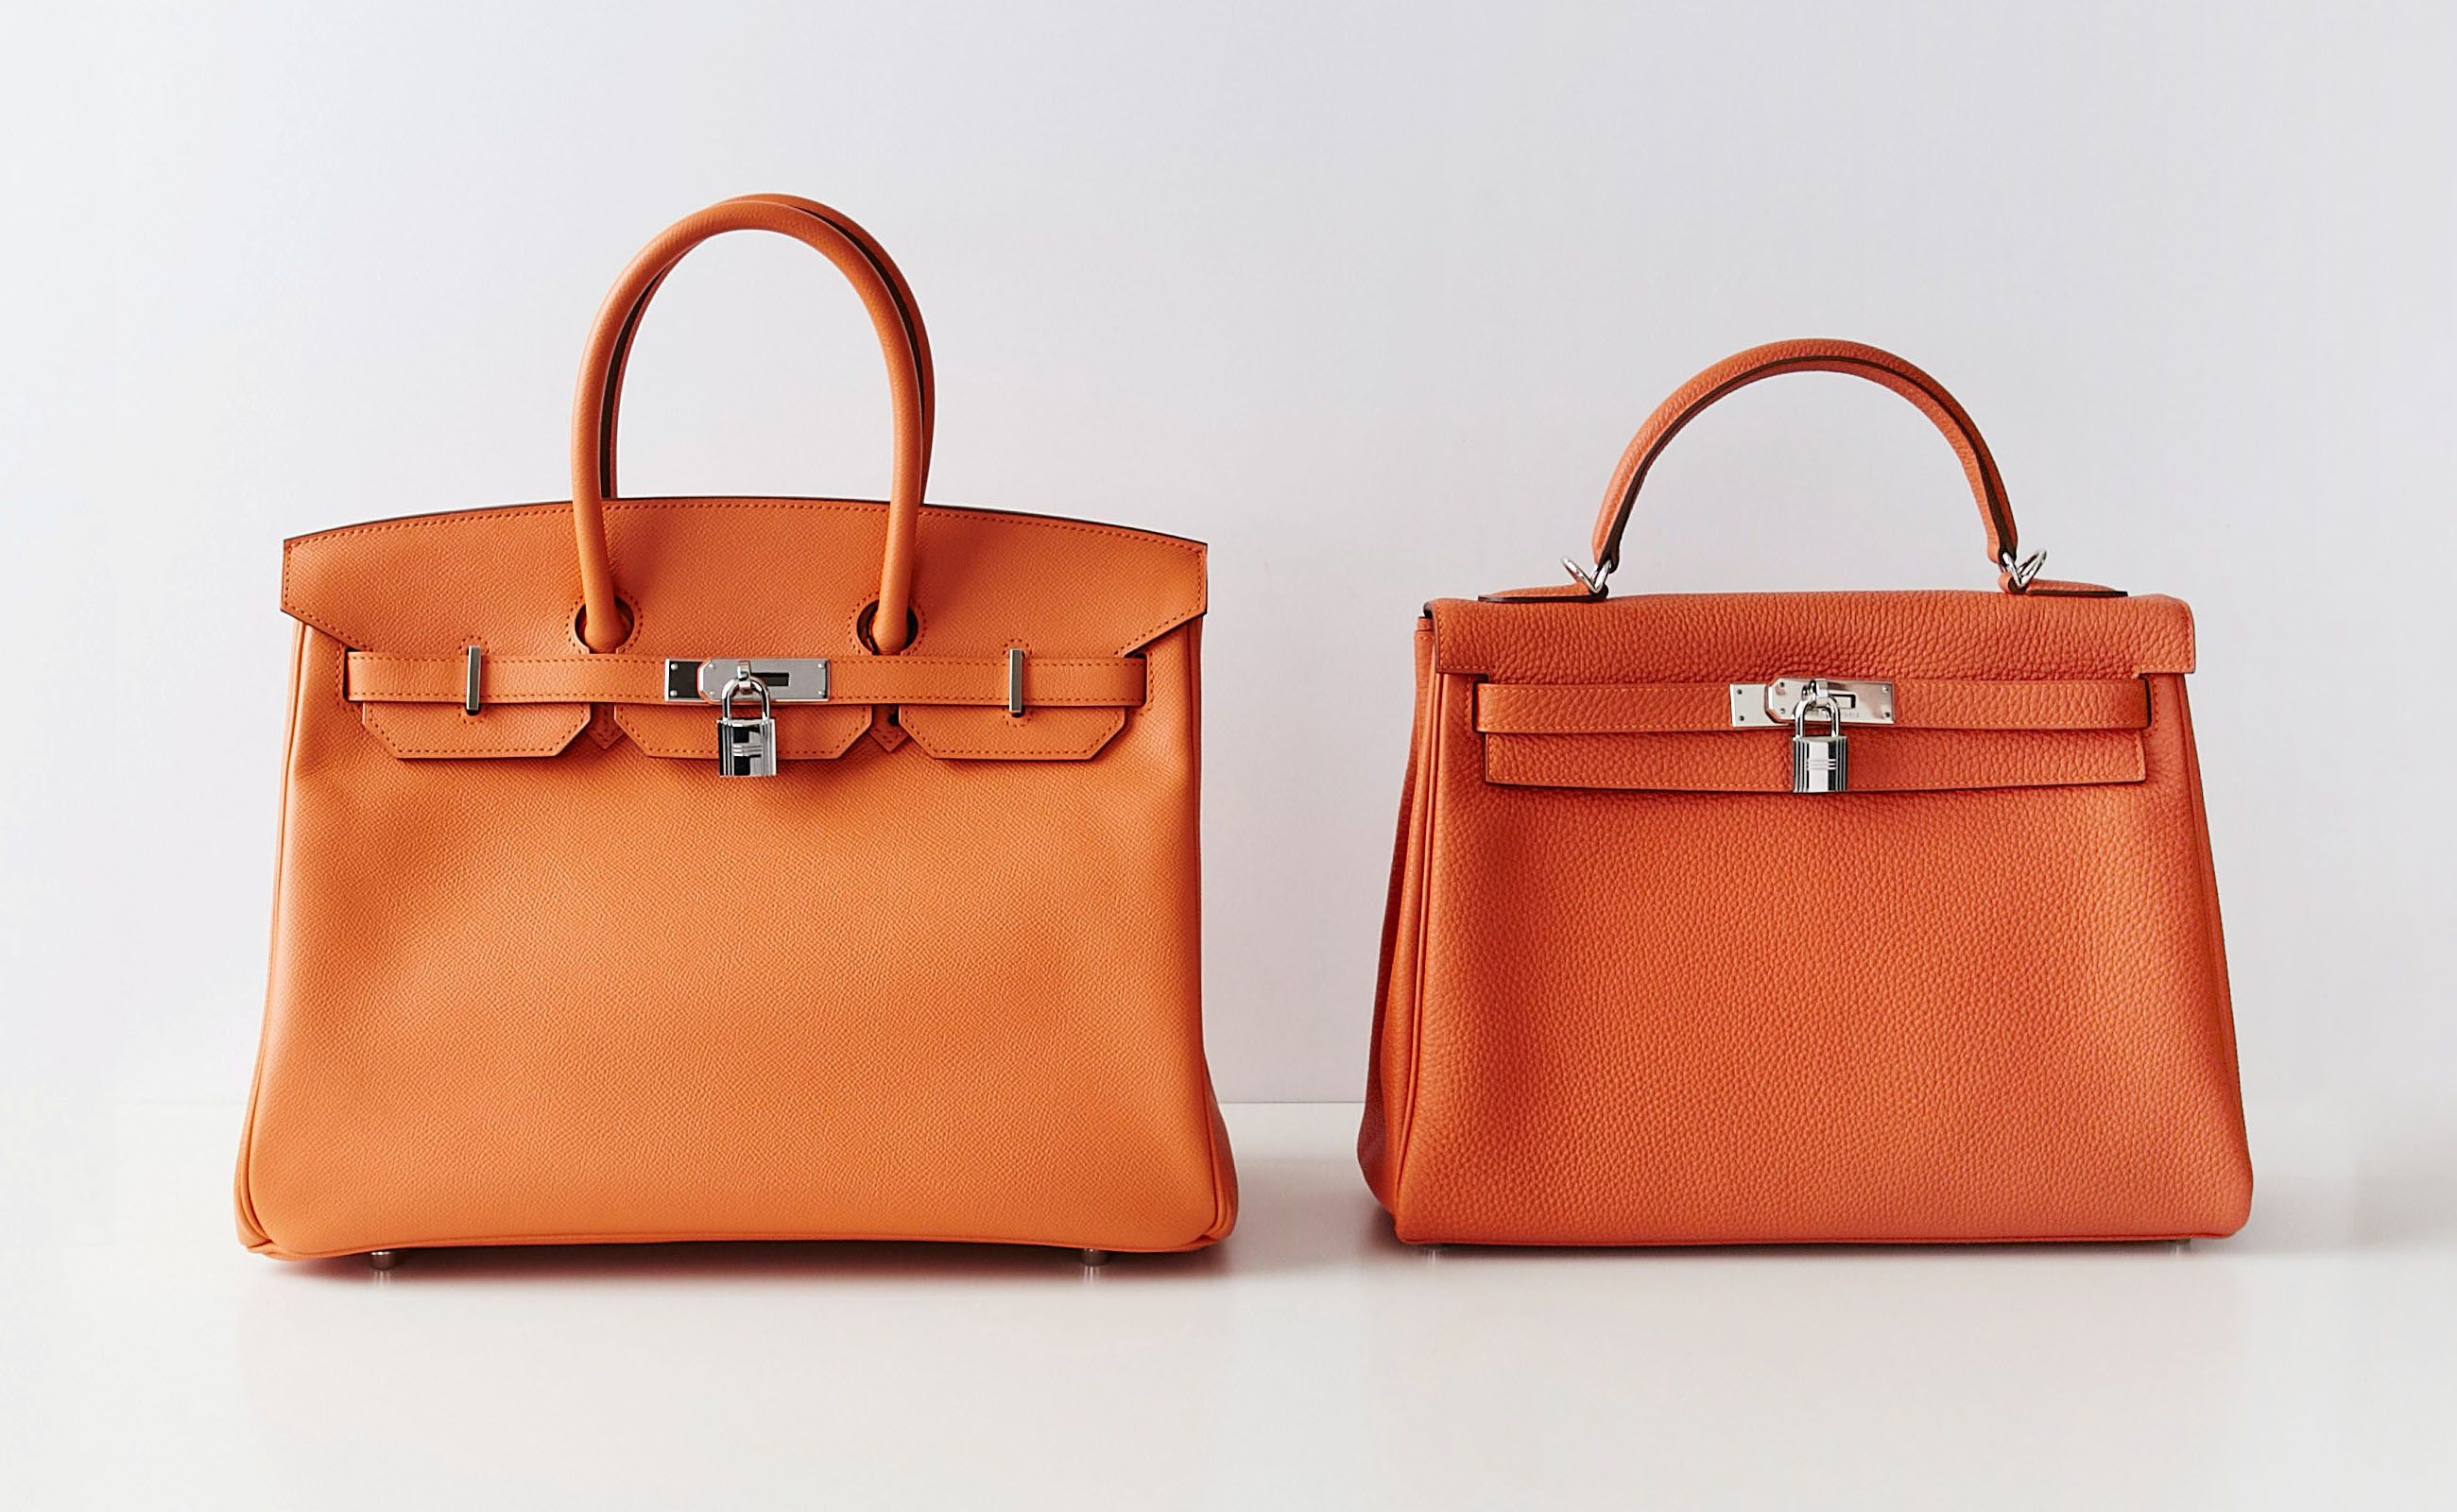 Hermes Birkin Bag Vs Kelly How To Know The Difference